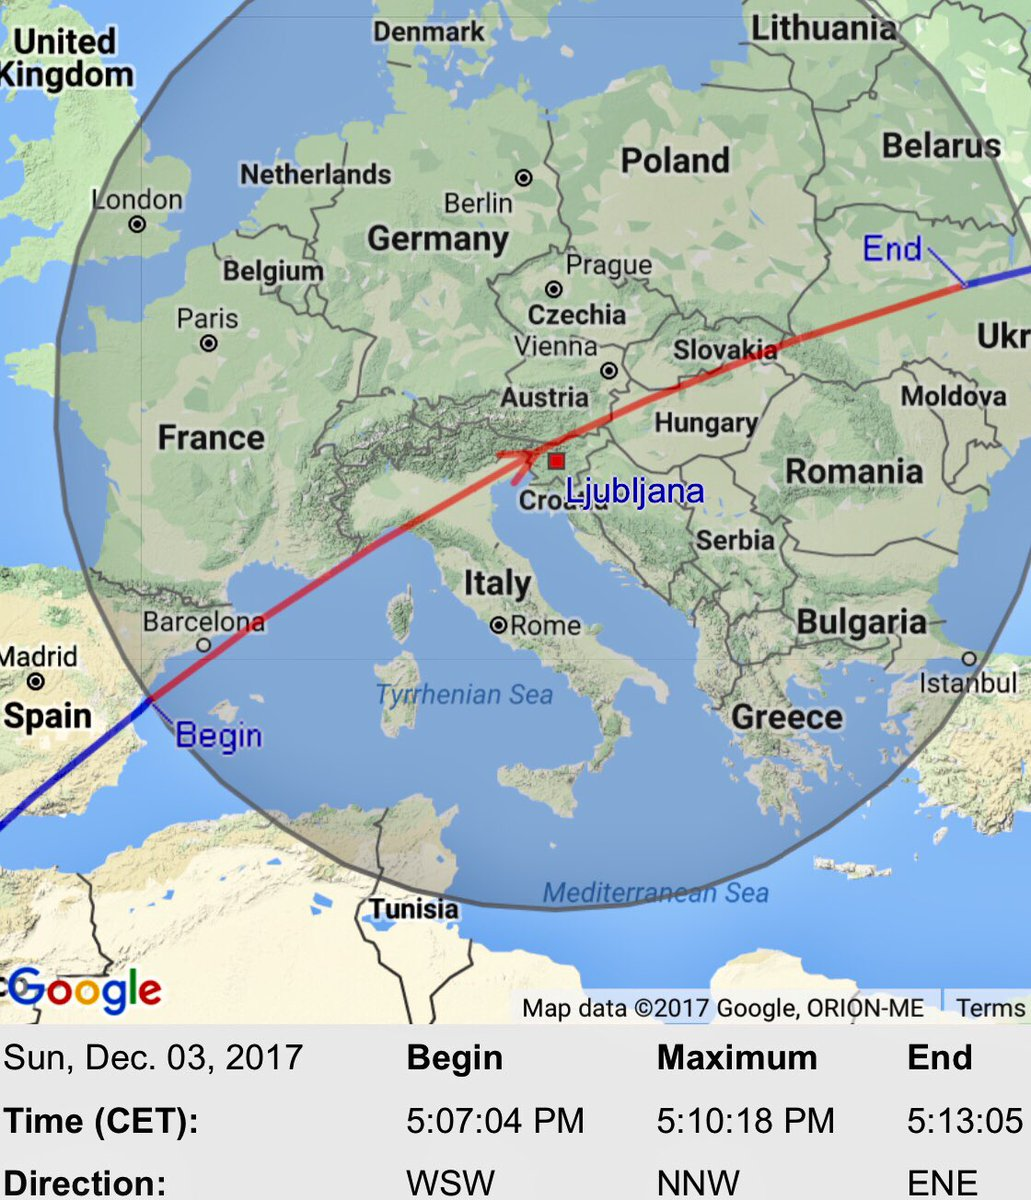 Ignazio magnani on twitter slovenija the international the international space station is visible to the naked eye at 1709 everywhere if clouds allow suggestion set your alarm clock gumiabroncs Image collections